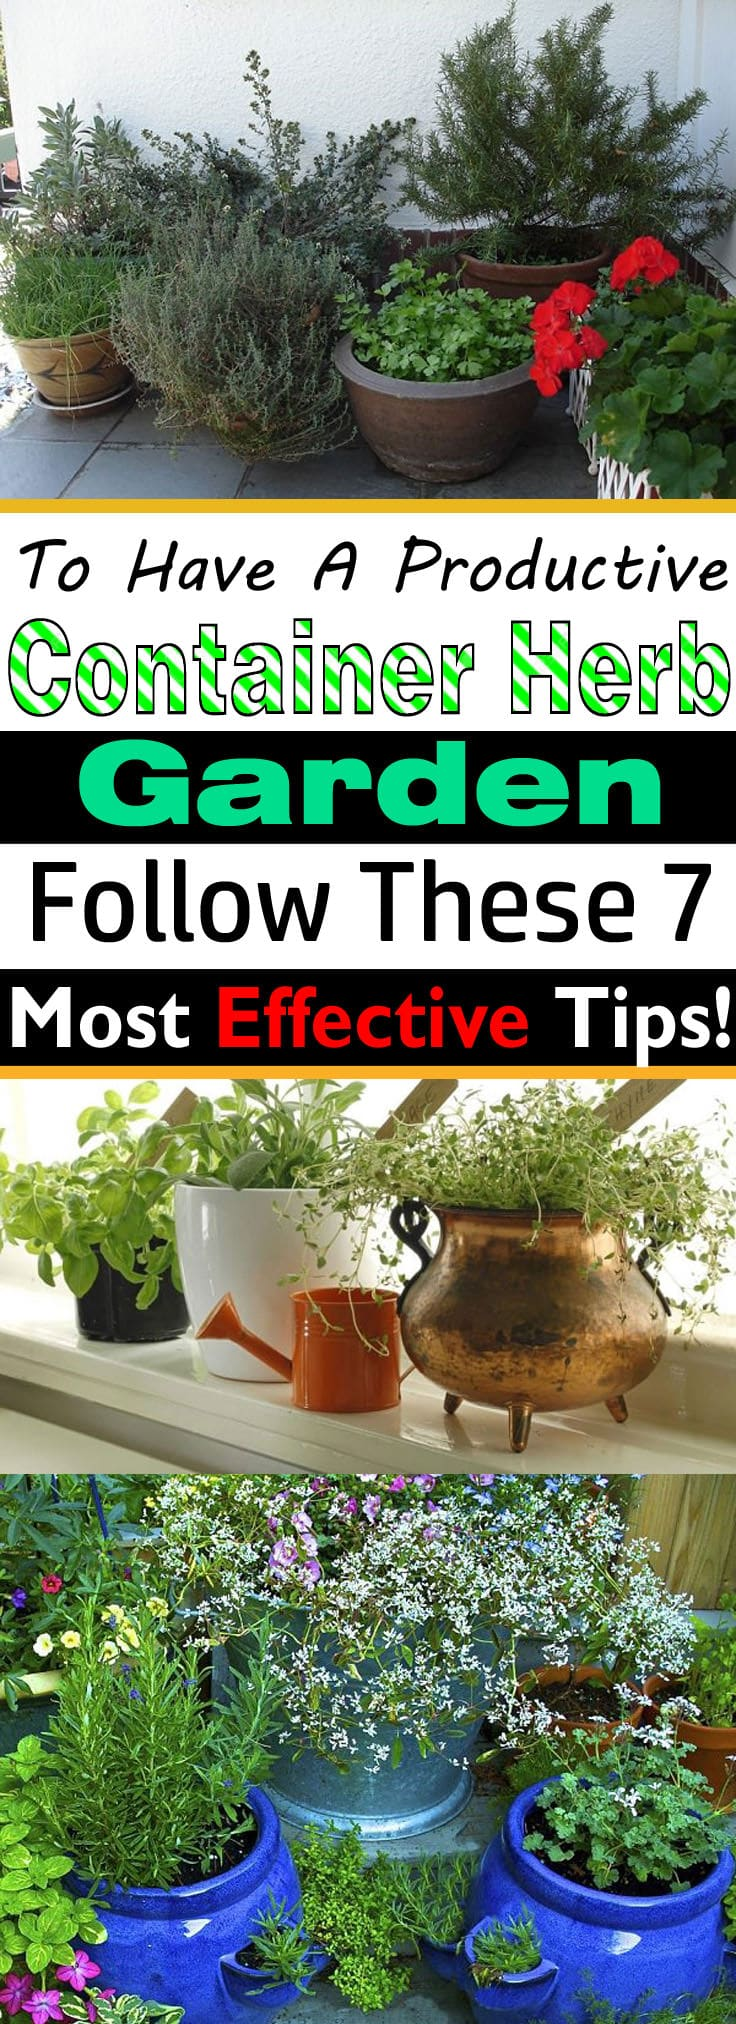 If you're growing herbs in pots, must follow these herb gardening tips!